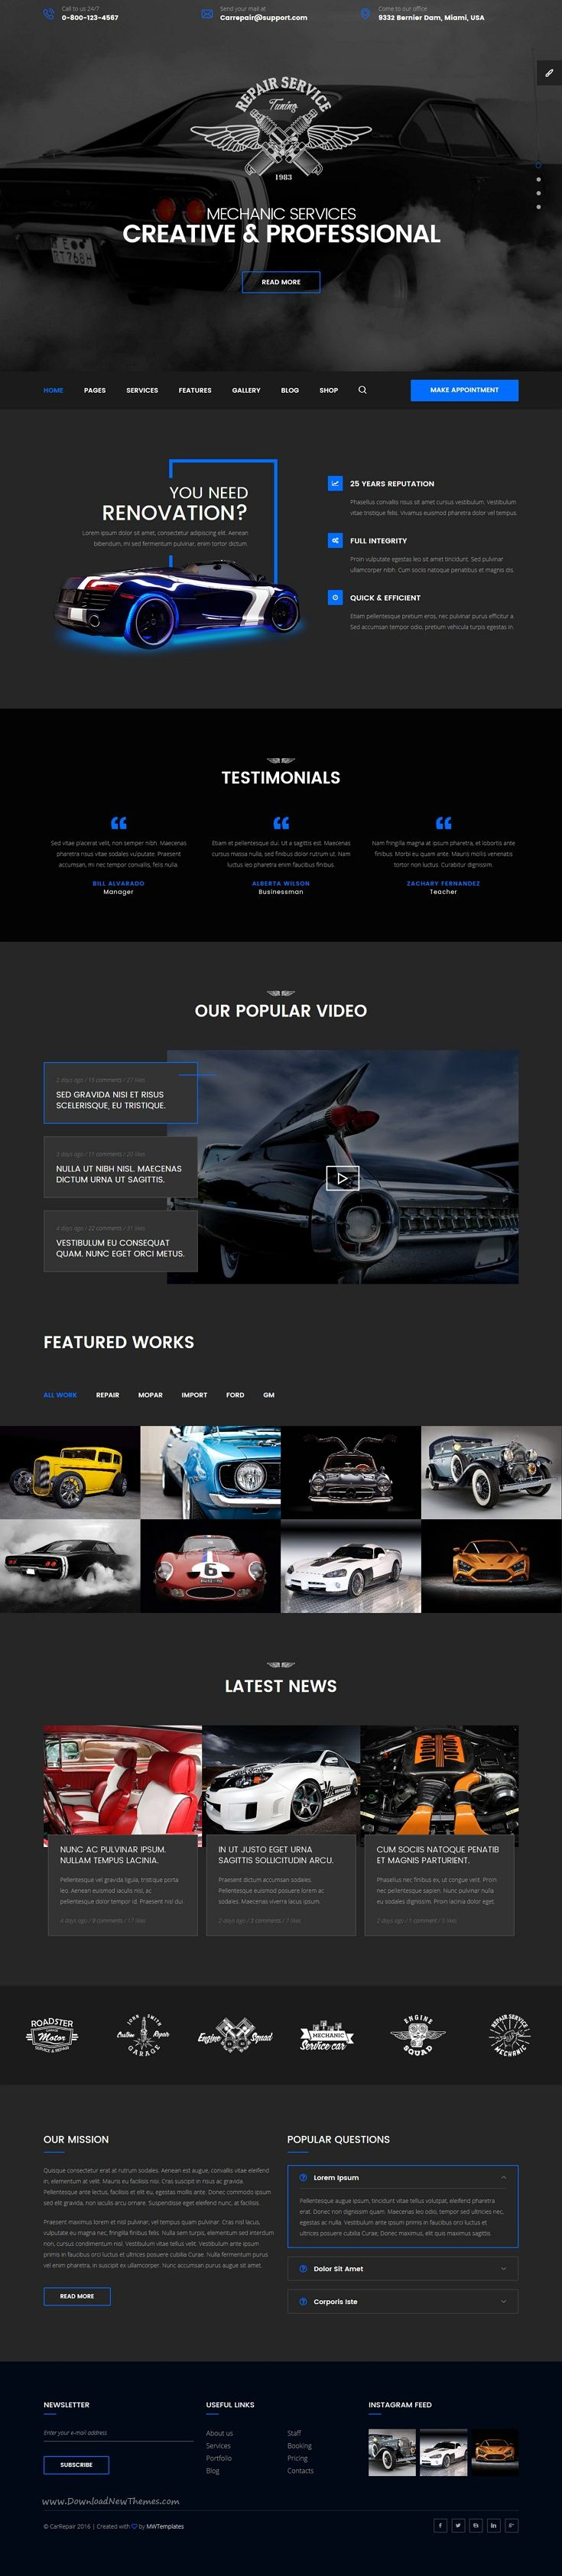 Mechanic car repair tuning routine maintenance html template with visual builder